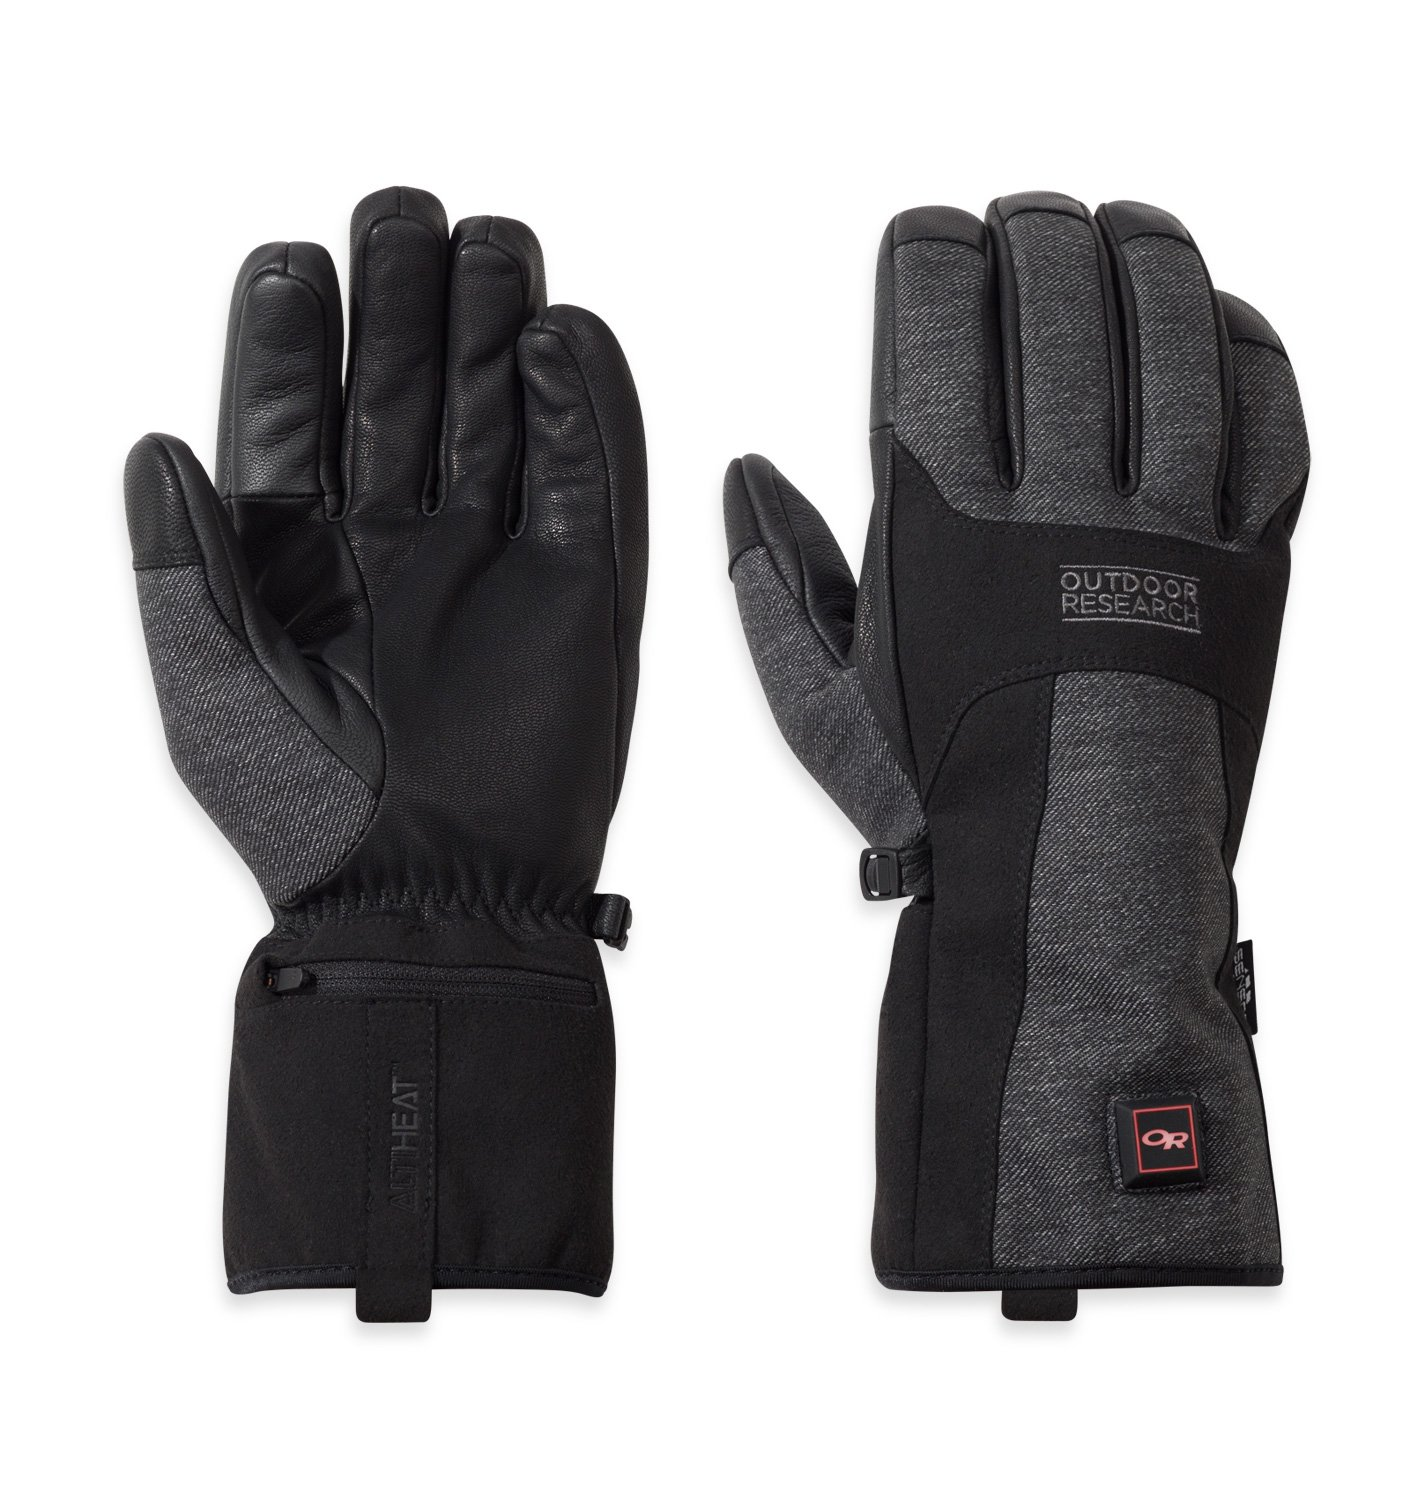 Outdoor Research Handschuhe Oberland Heated Gloves